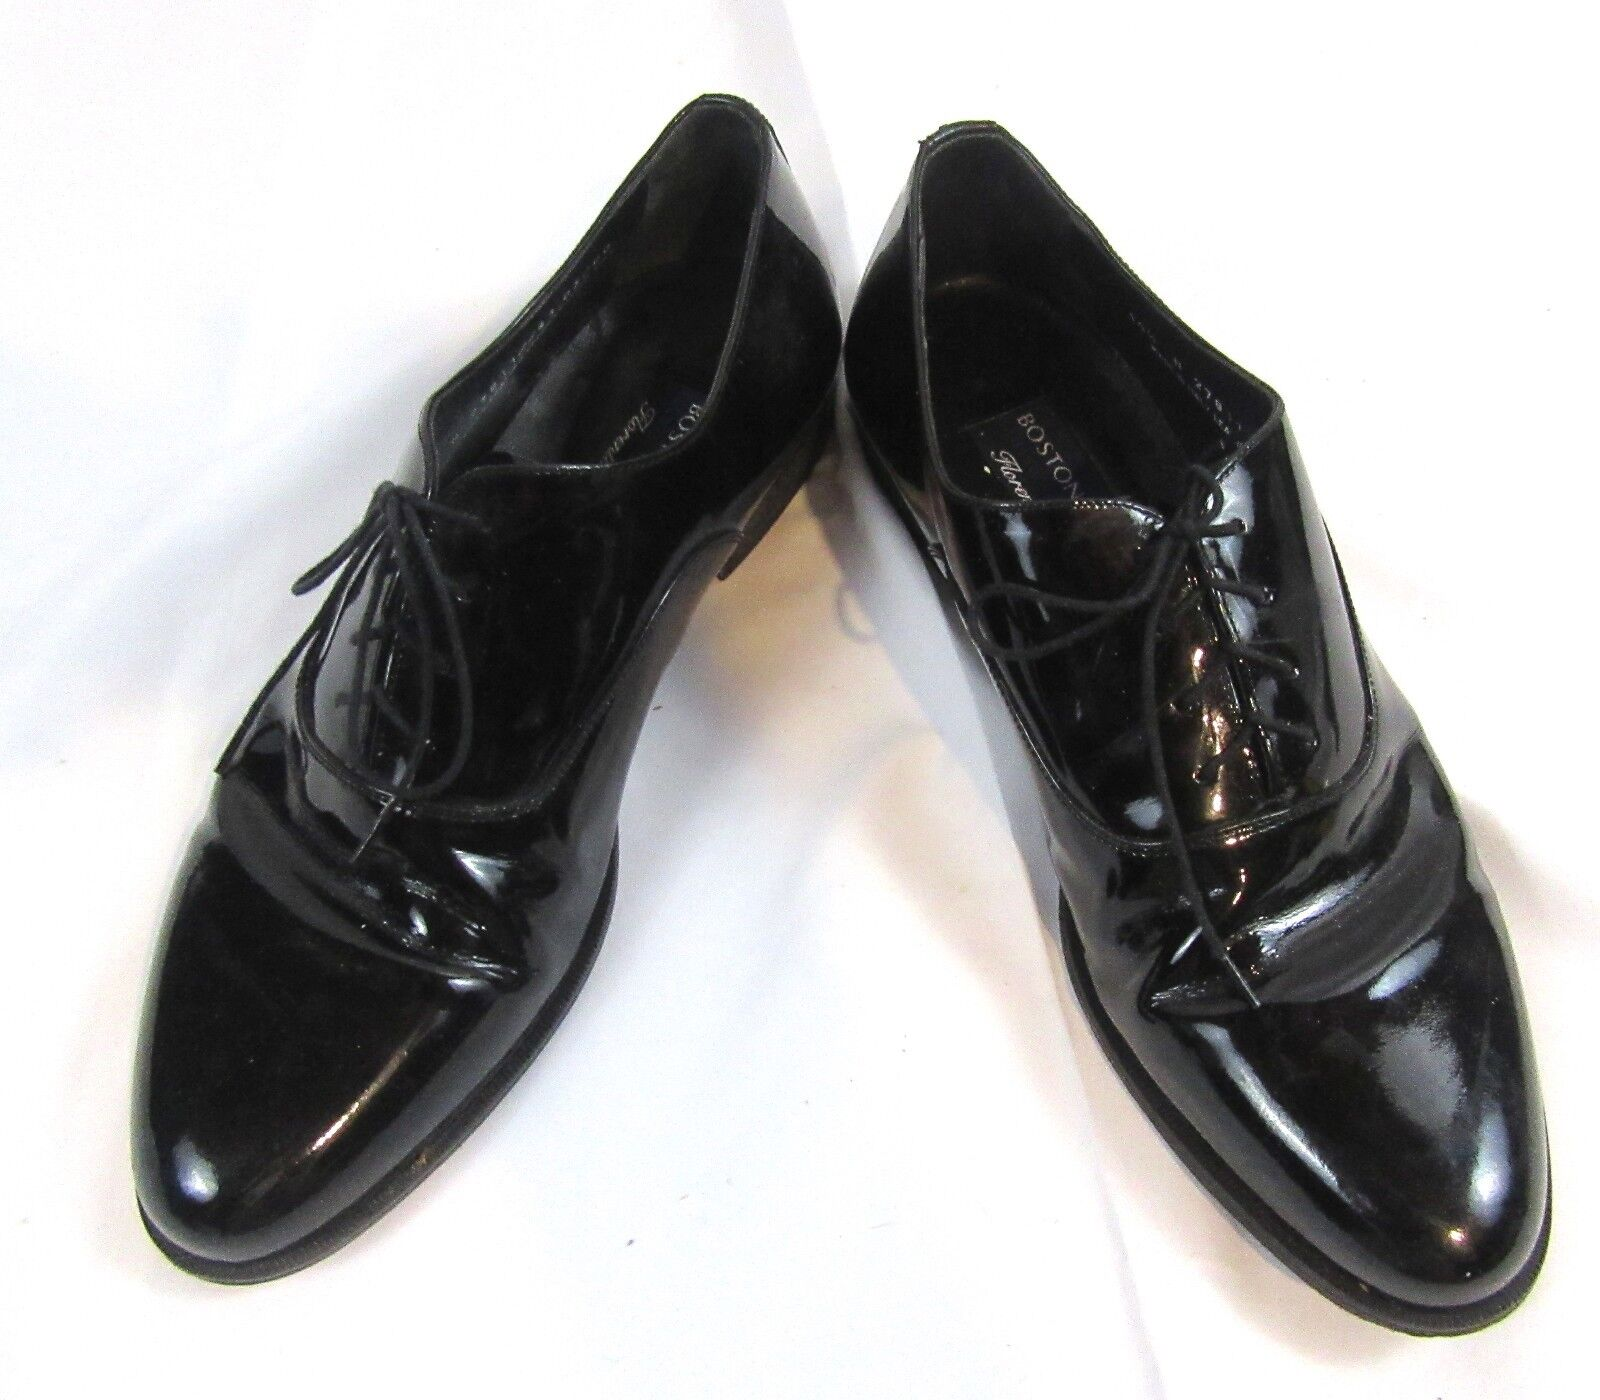 Bostonian Pantent Leather Leather, Dress Formal Shoes, Tuxexo Leather, Leather Mens shoes SZ 10 N a1ed83